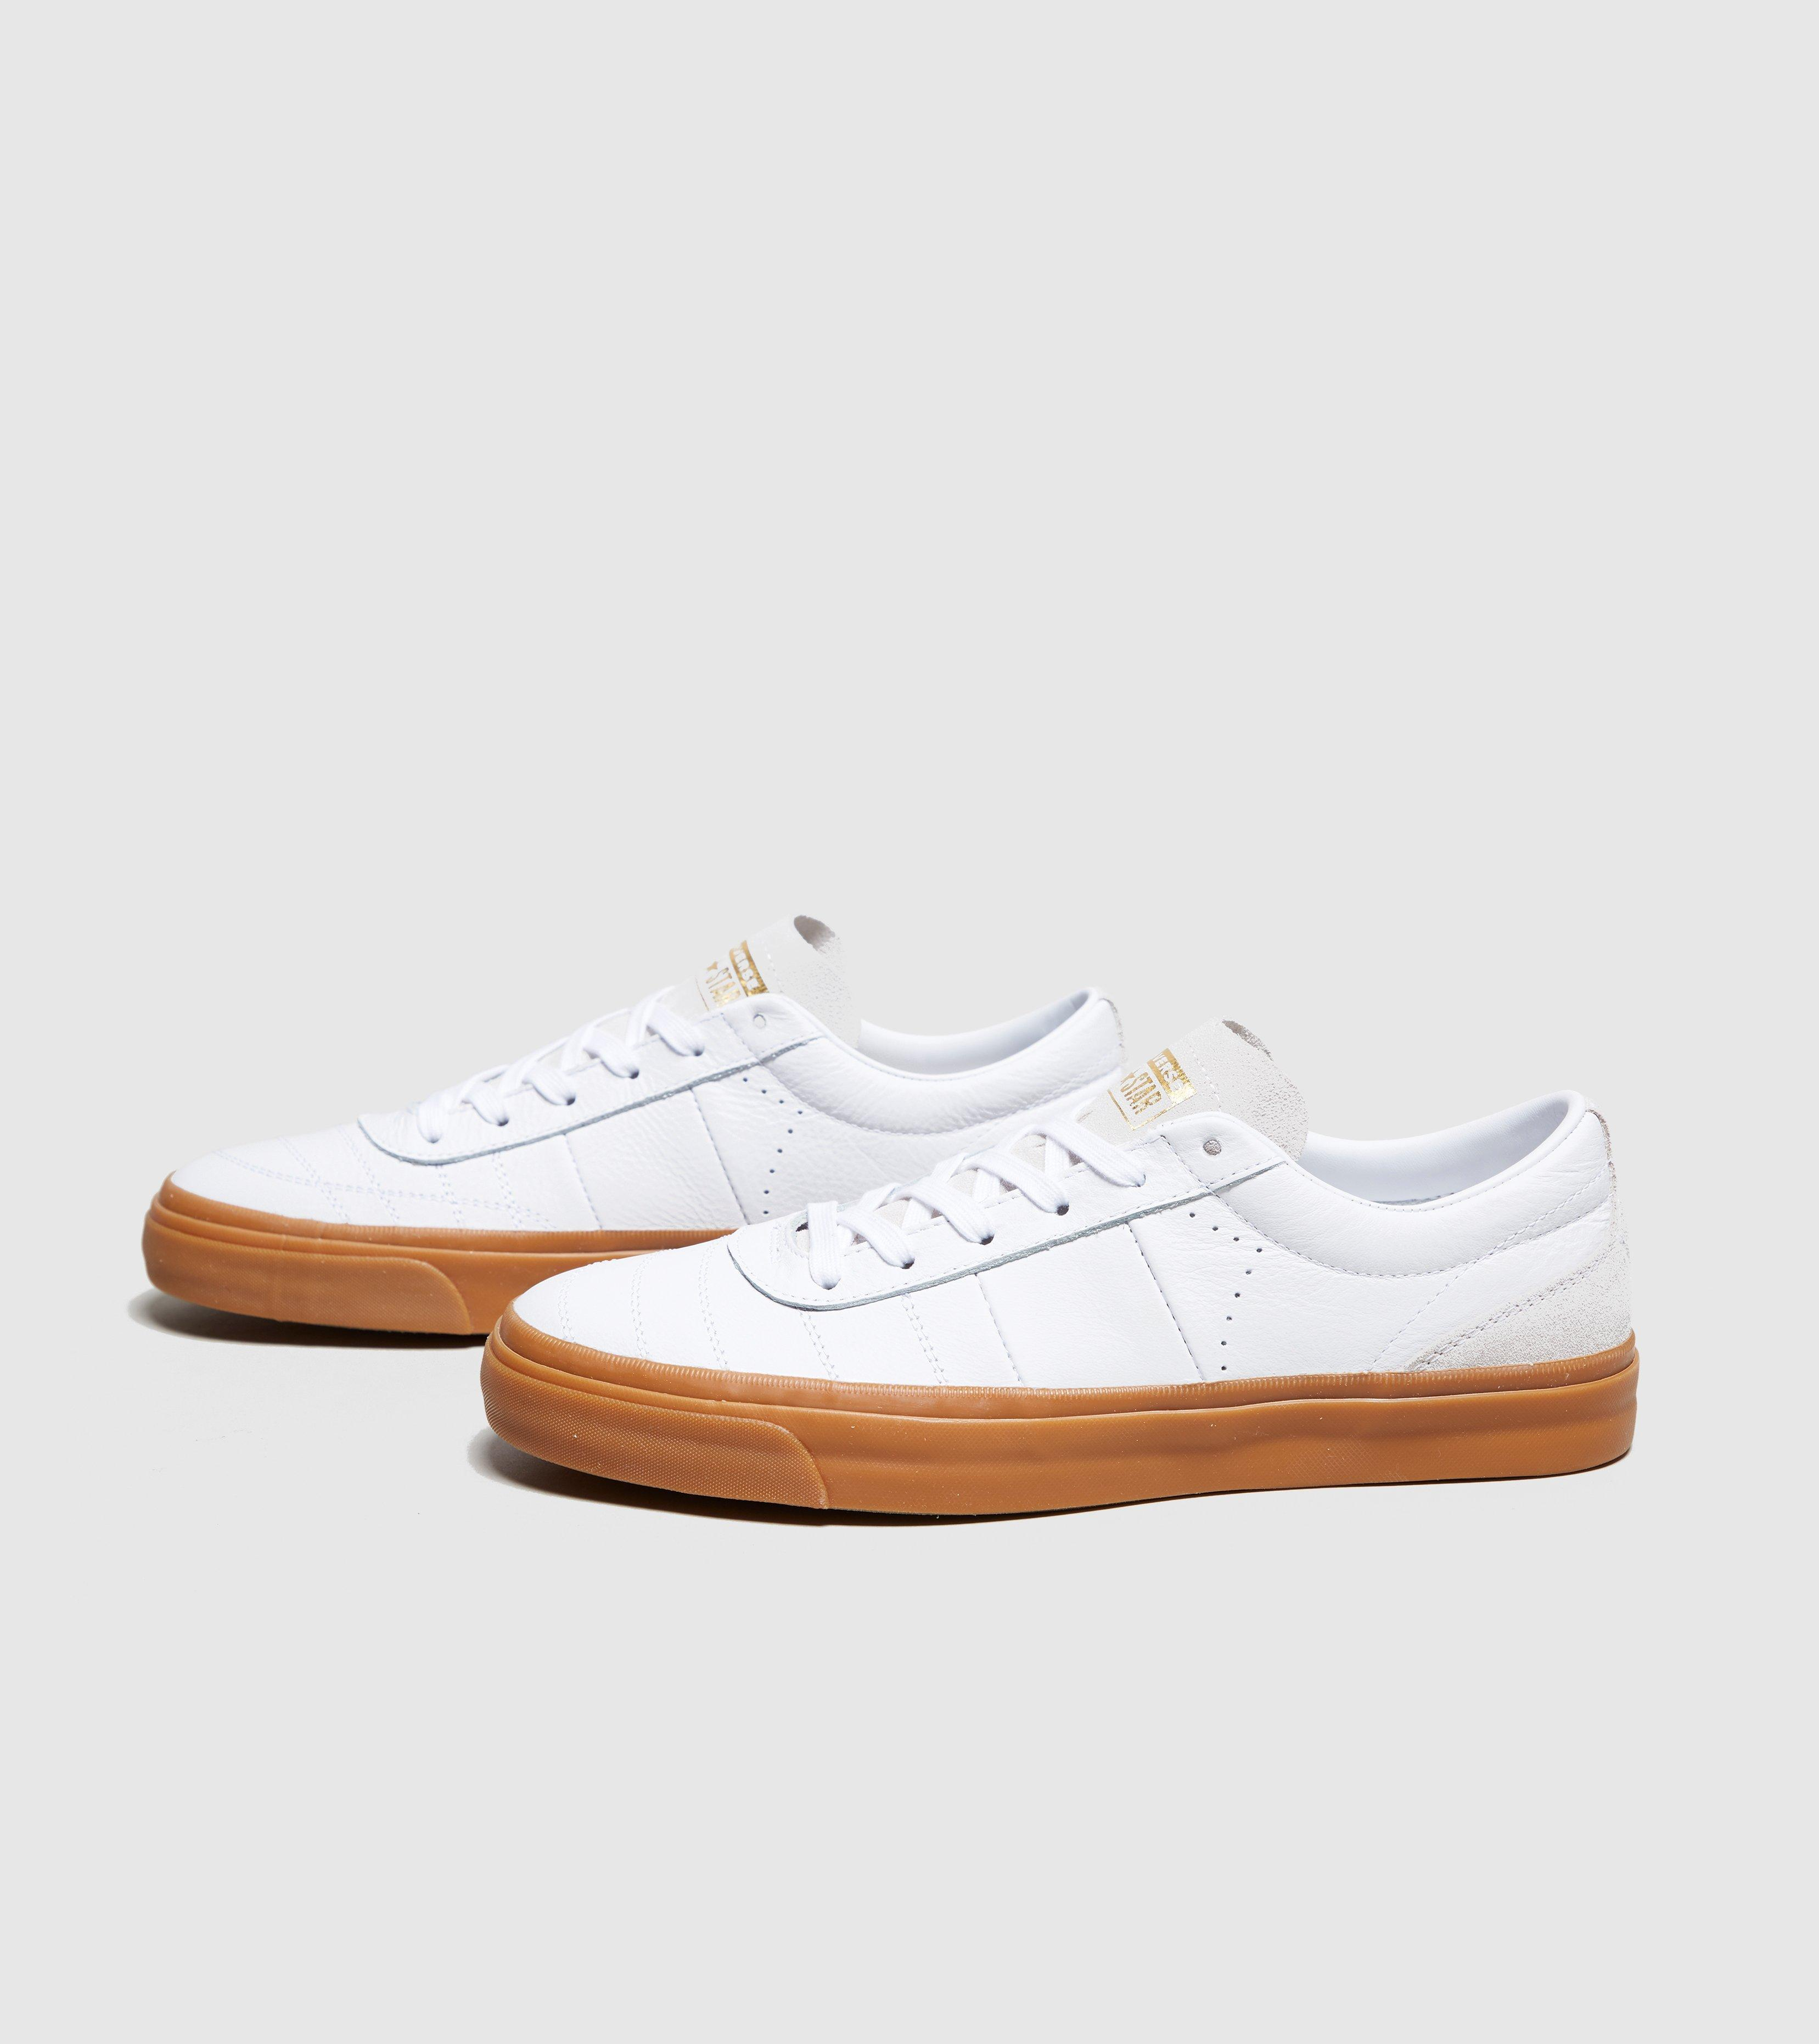 8032828972e6c8 Lyst - Converse One Star Cc in White for Men